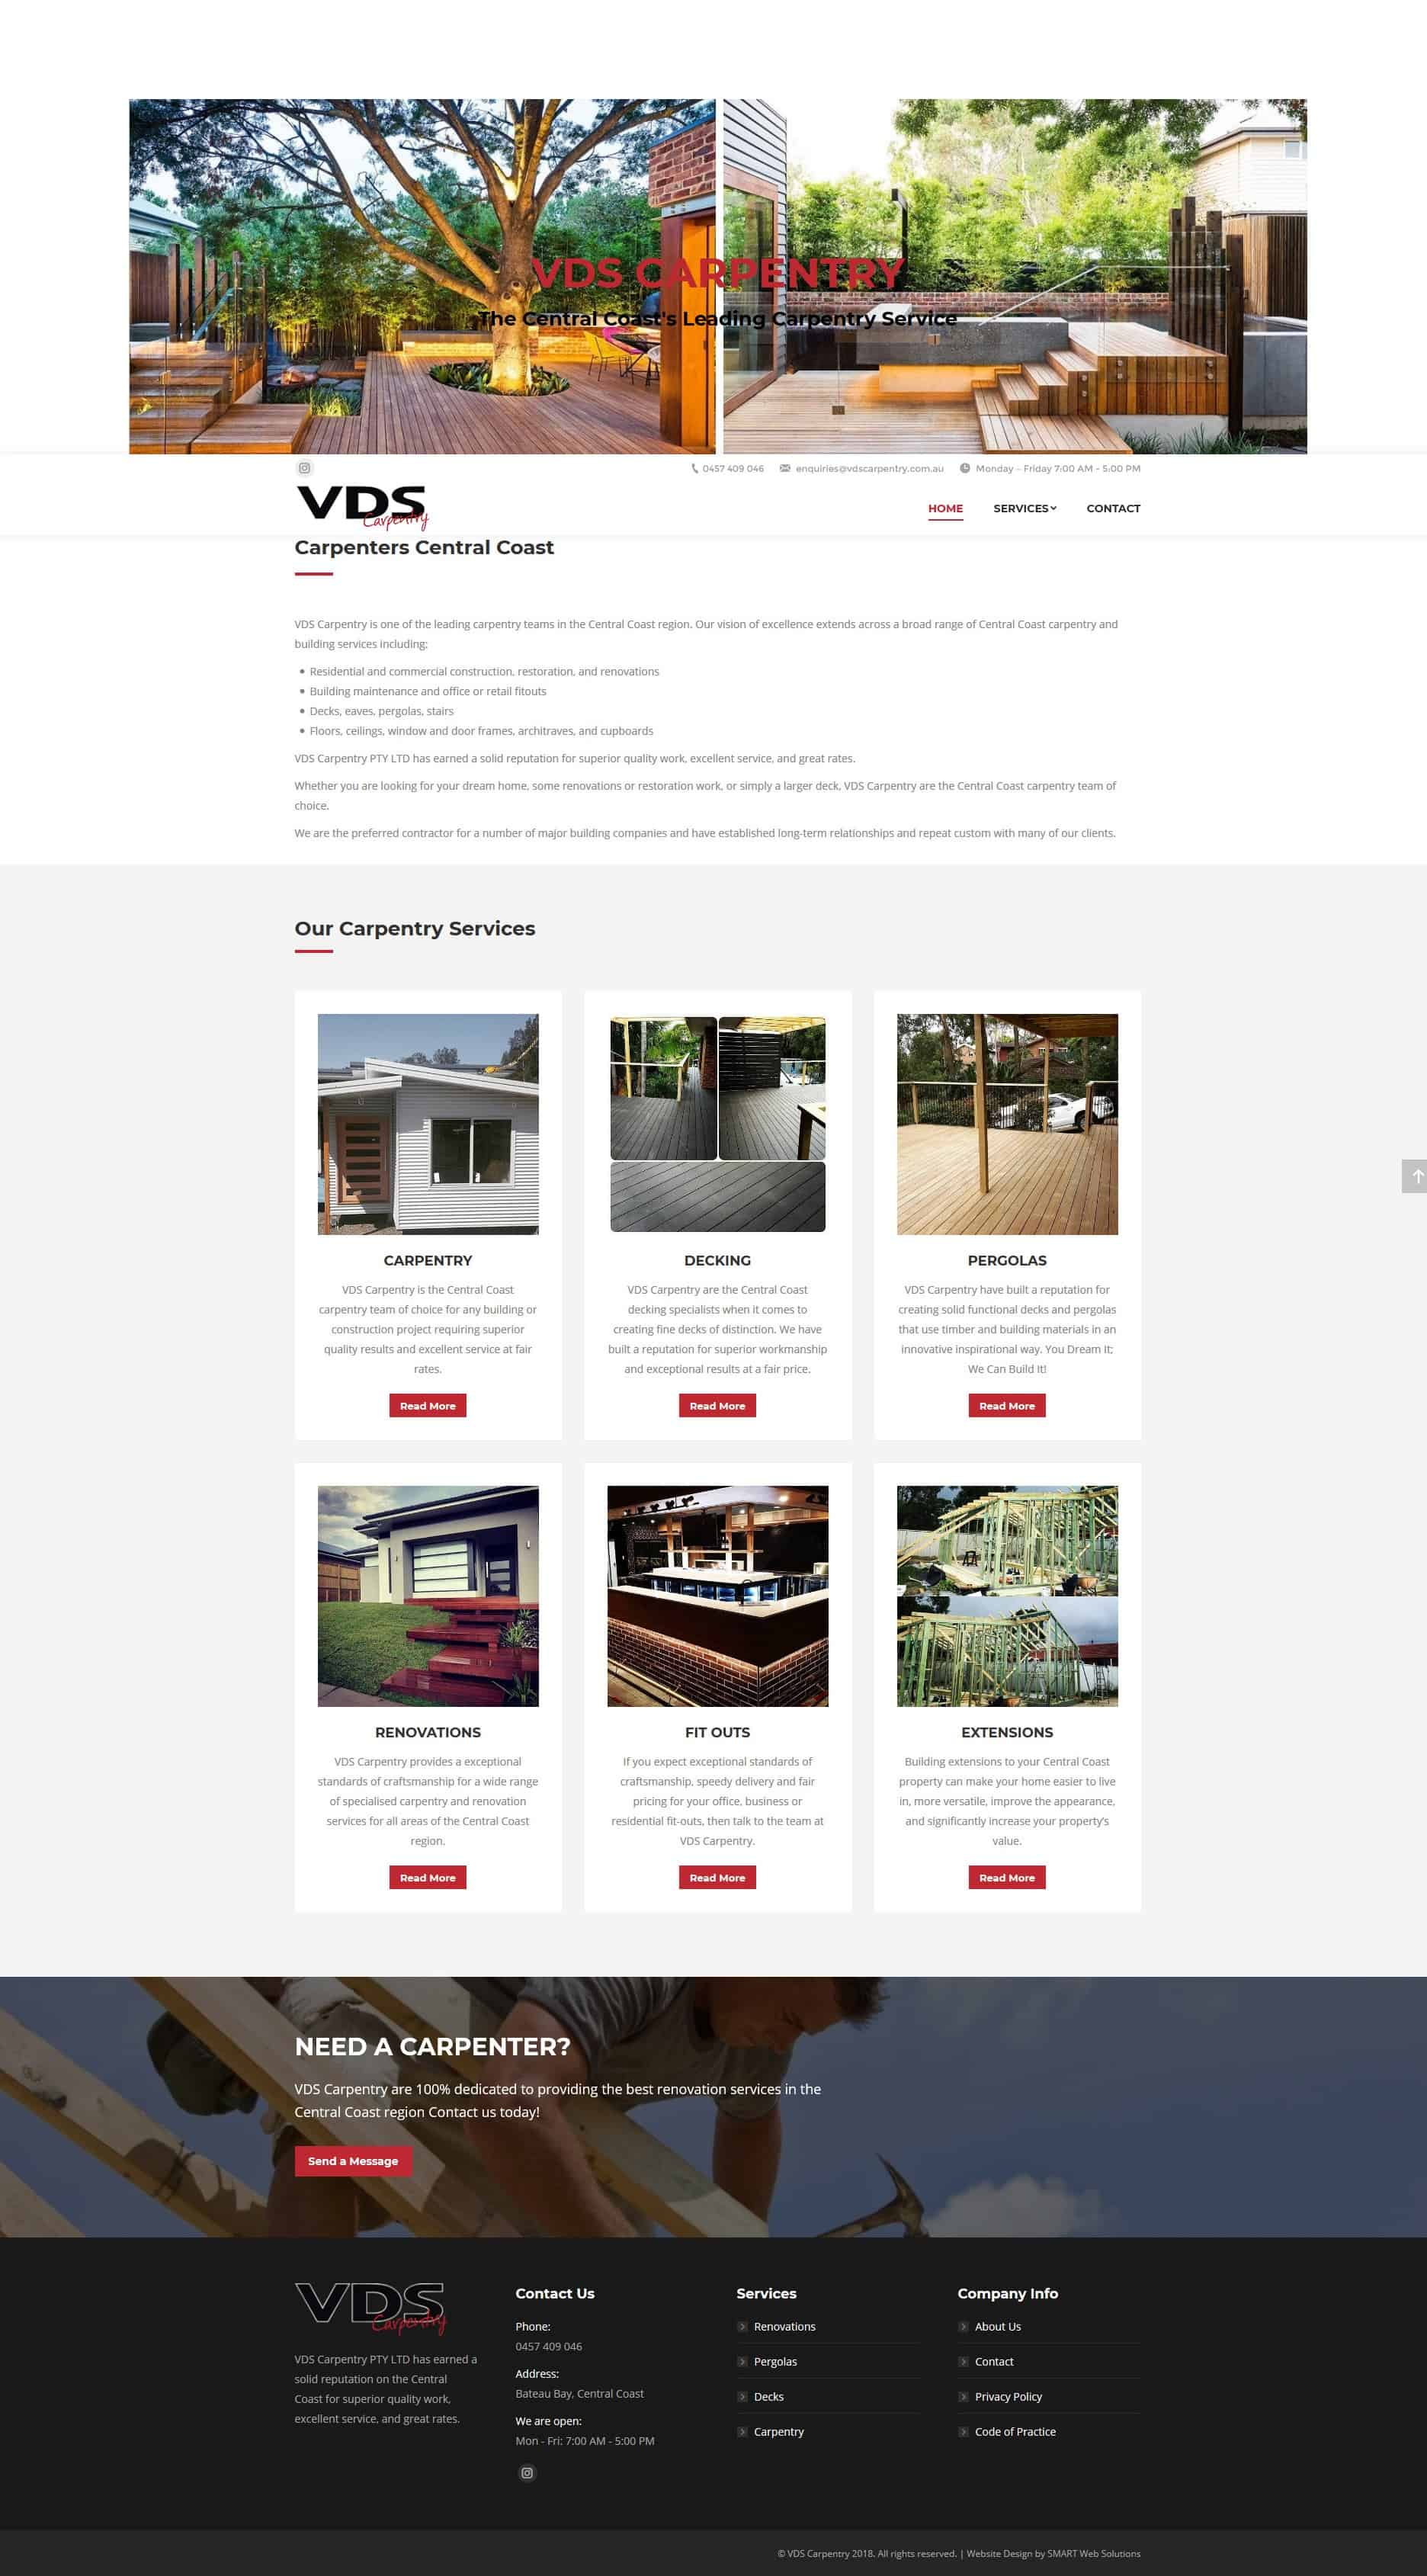 Carpenters Central Coast - Website Build After Image